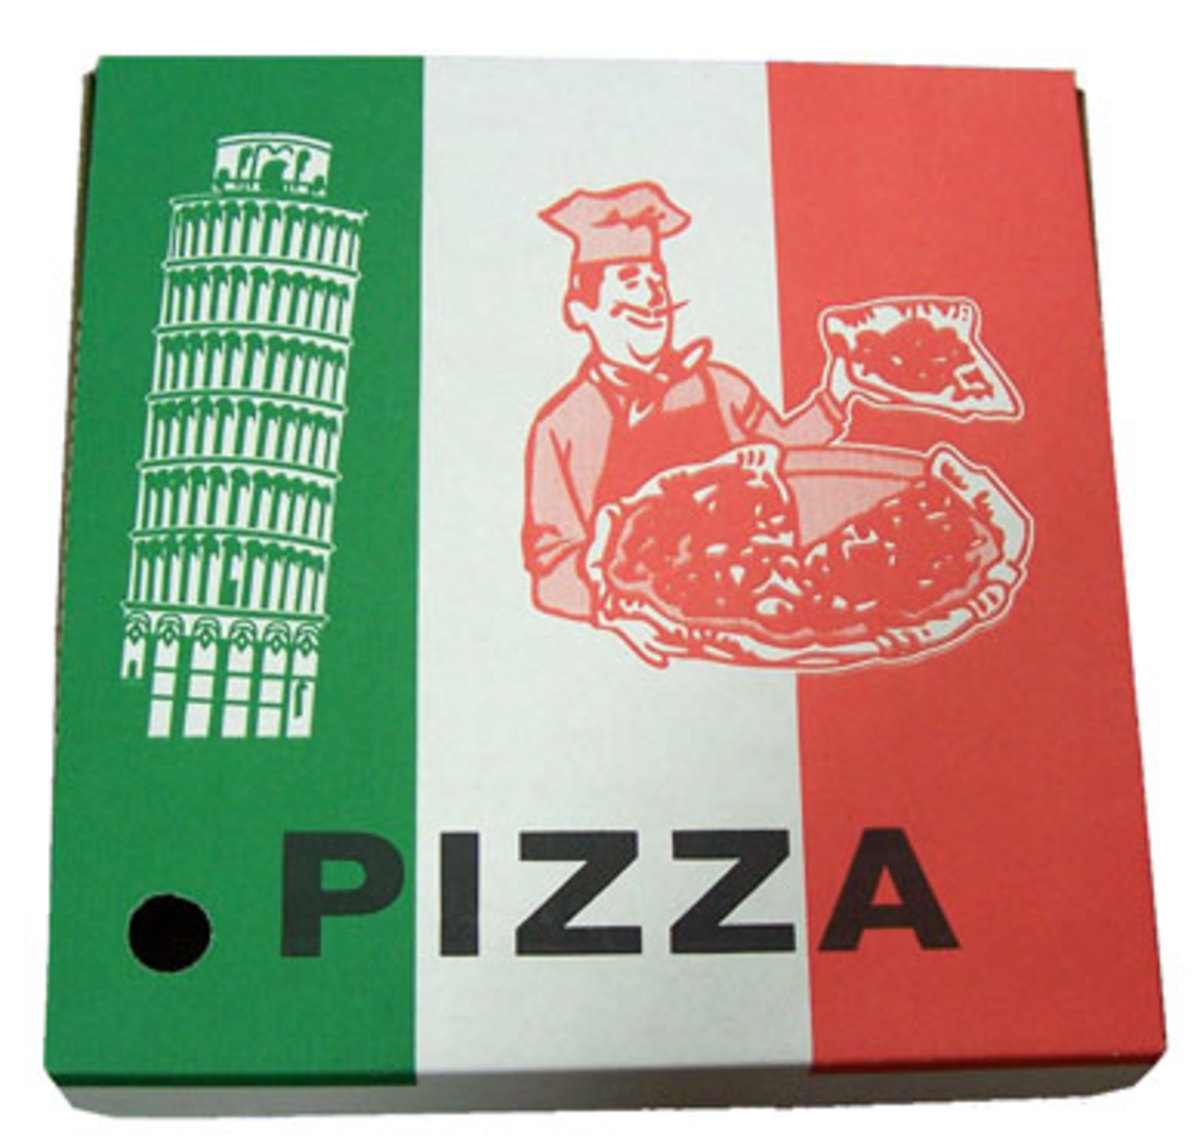 You can make your own box with a pizza box!